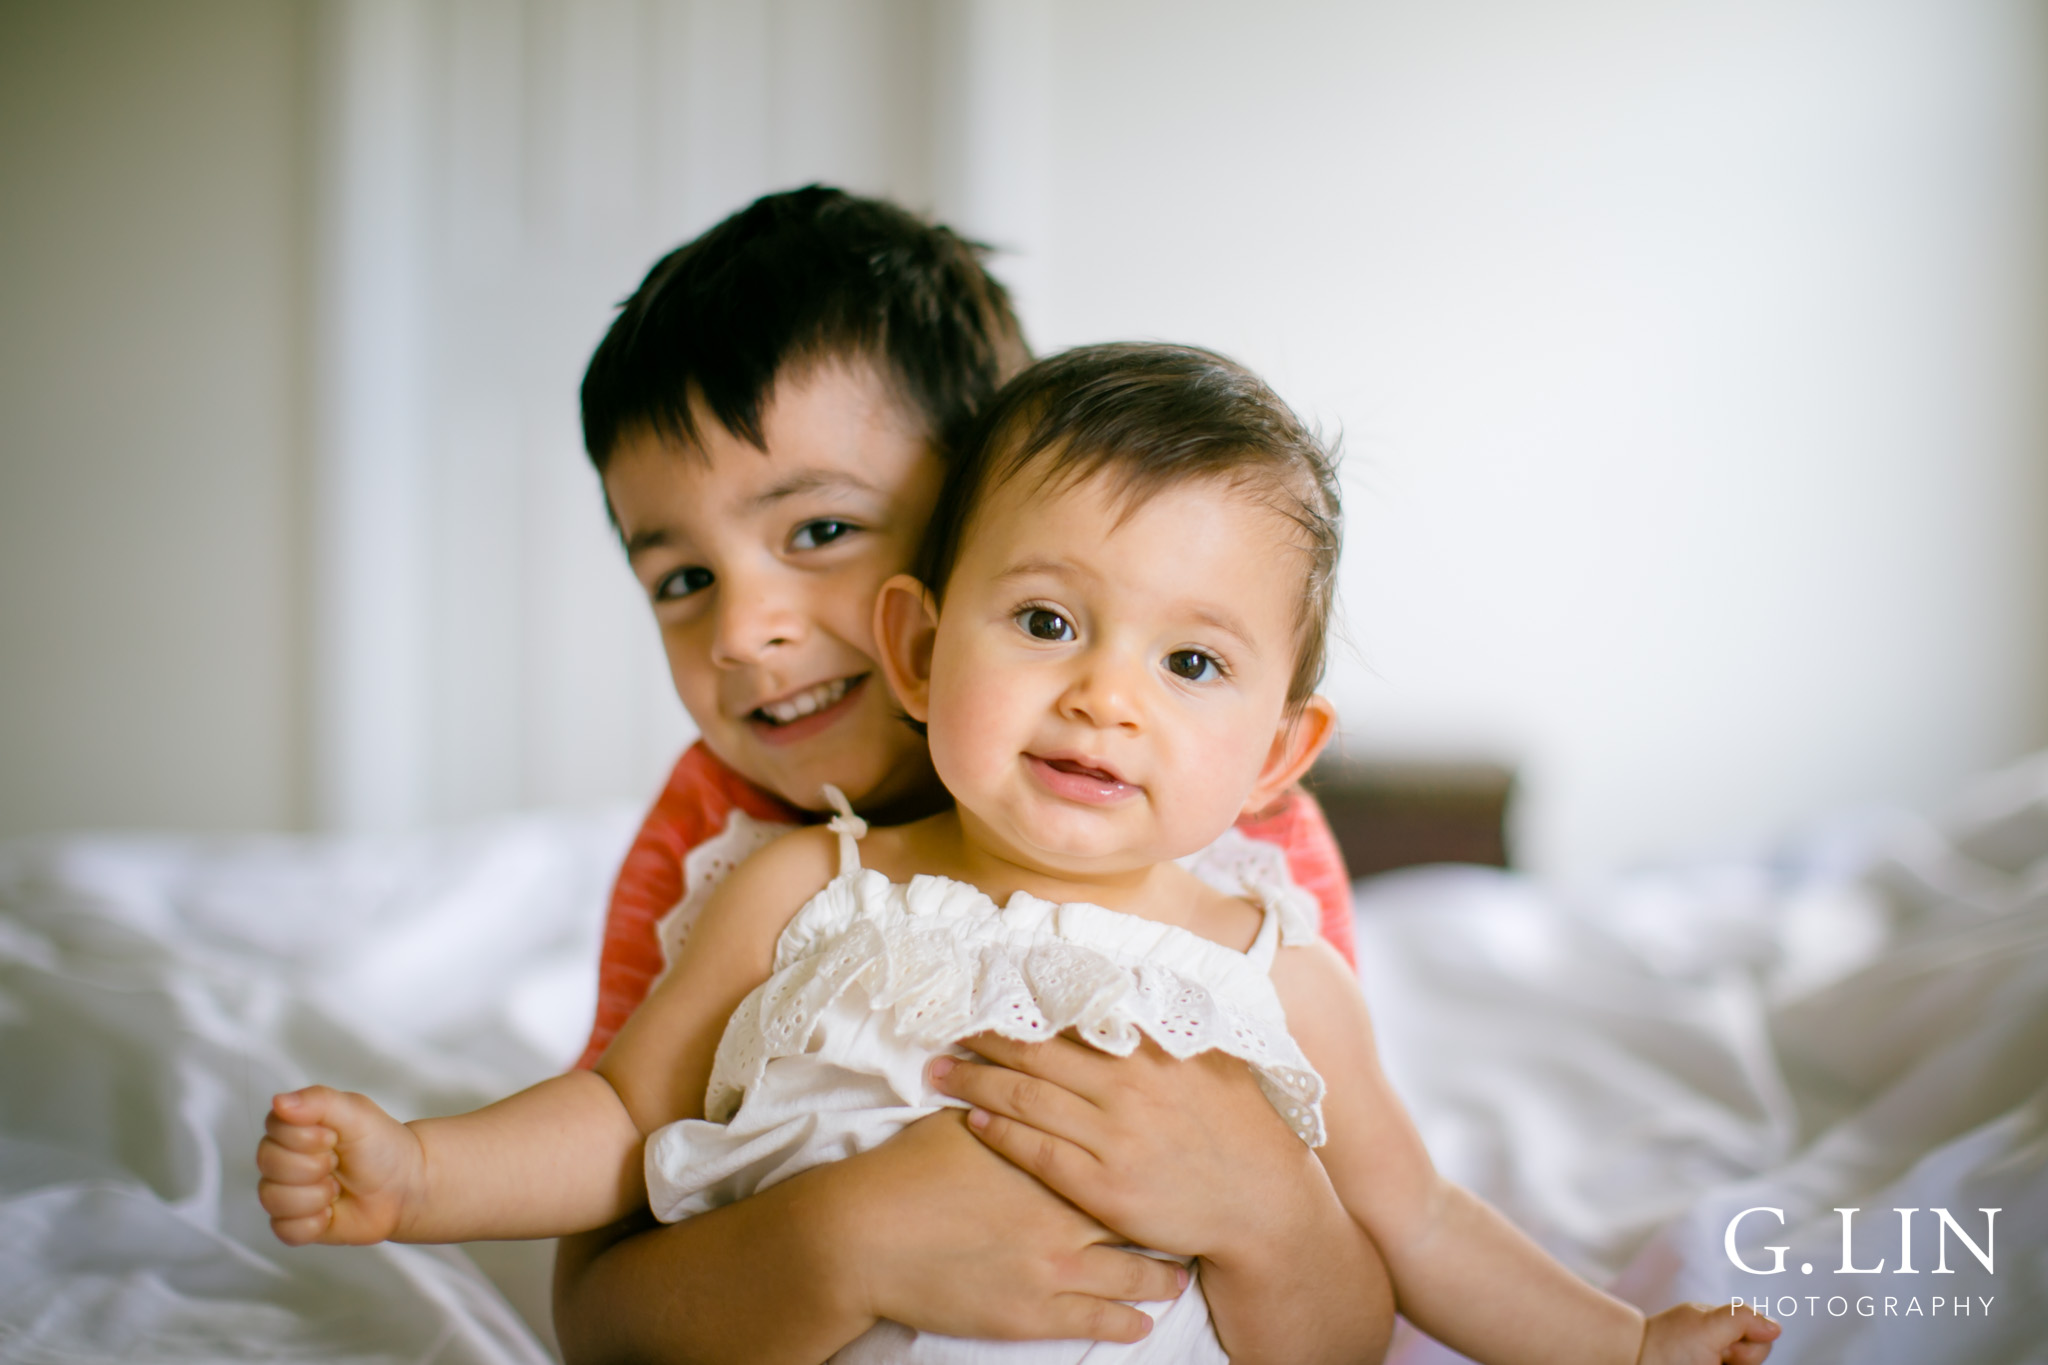 G. Lin Photography   Durham Family Photographer   Boy holding baby sister on white bed